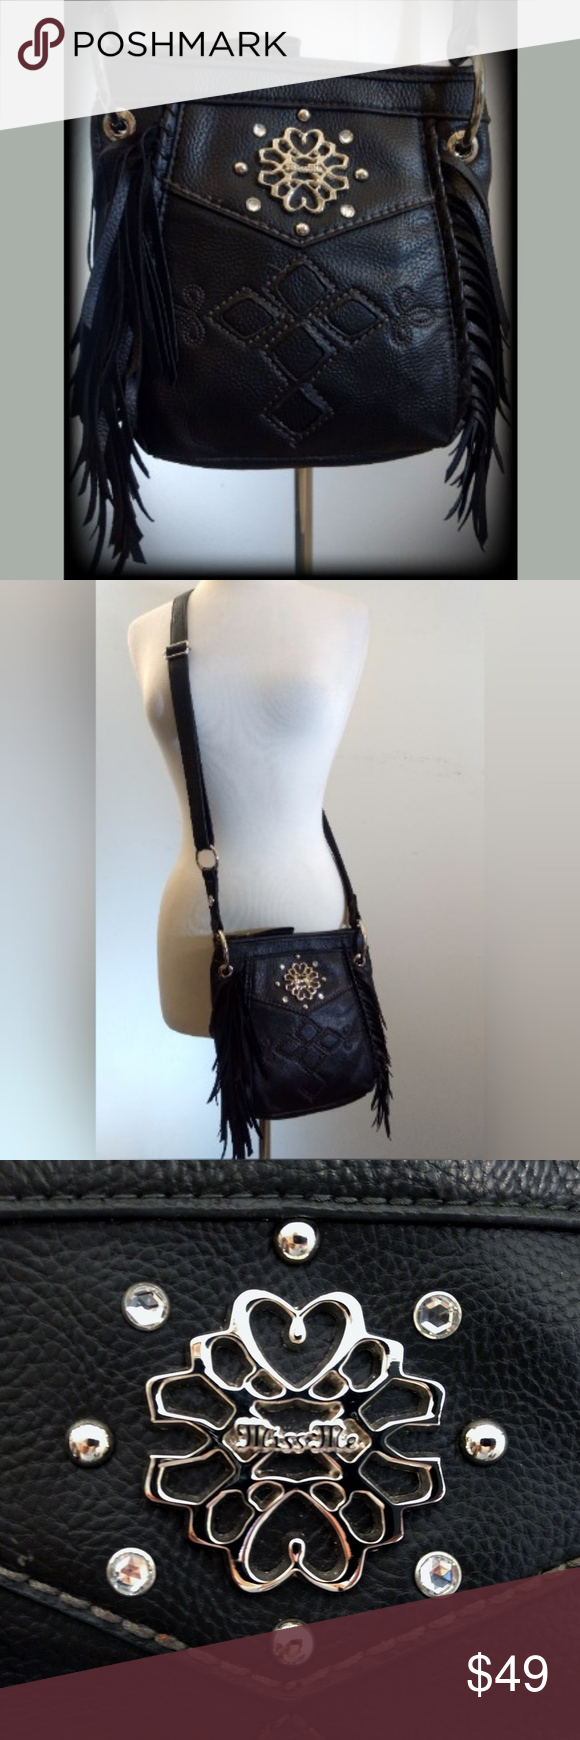 Miss Me Fringe Cross Embellished Crossbody Bag Gorgeous Miss Me Black Faux  Leather Fringe Bag in Excellent Pre-Owned Condition! EXTERIOR  Overall  Condition  ... 555199517df5e